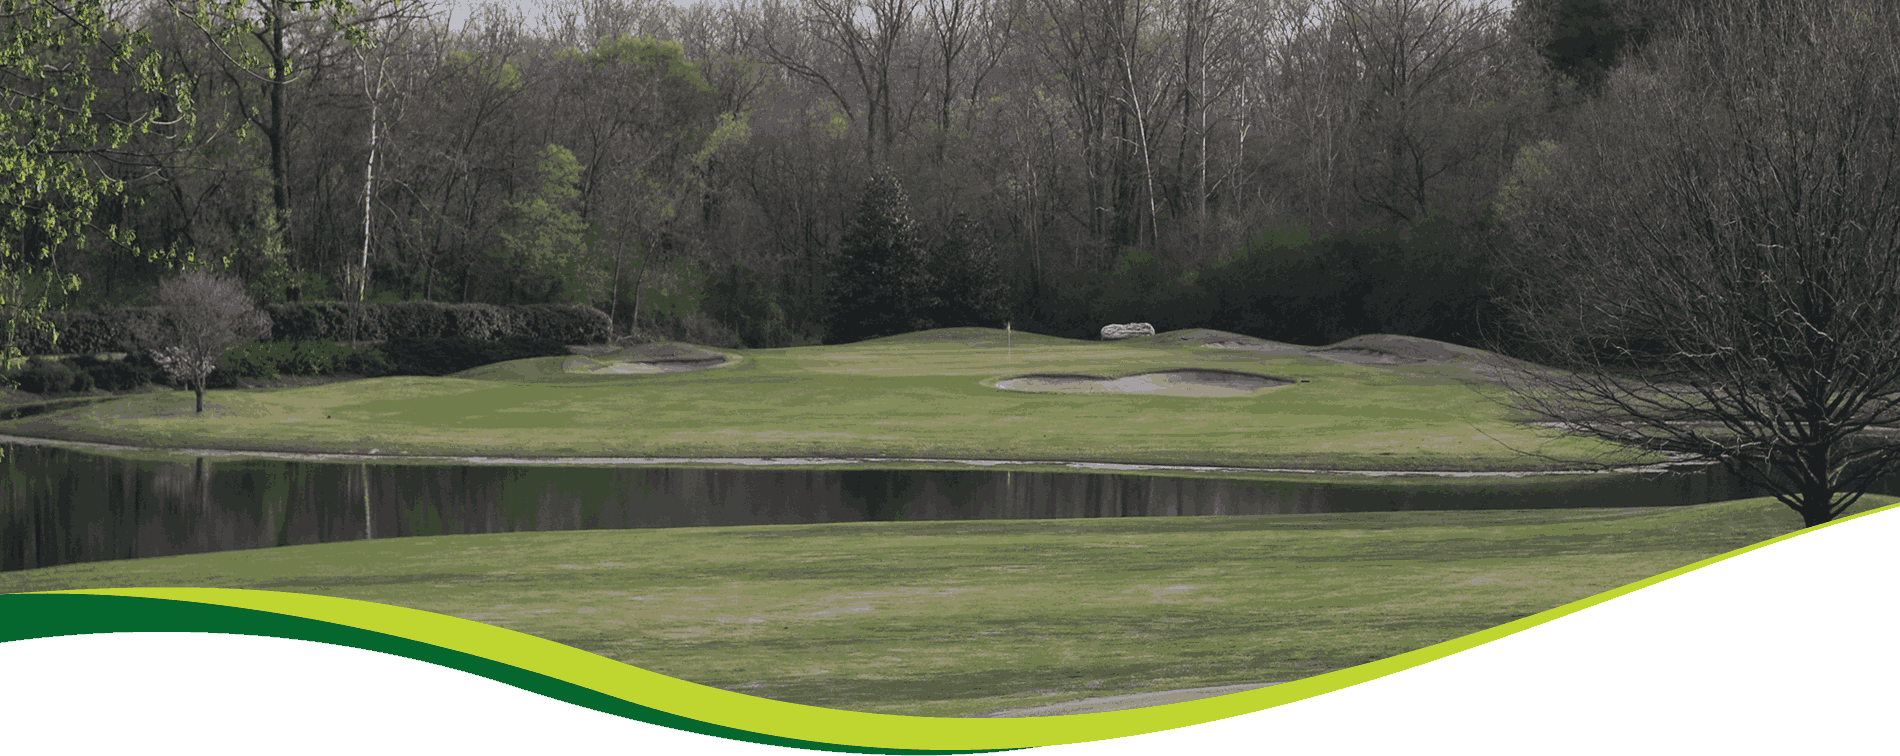 Woodward Golf And Country Club Birmingham Alabama